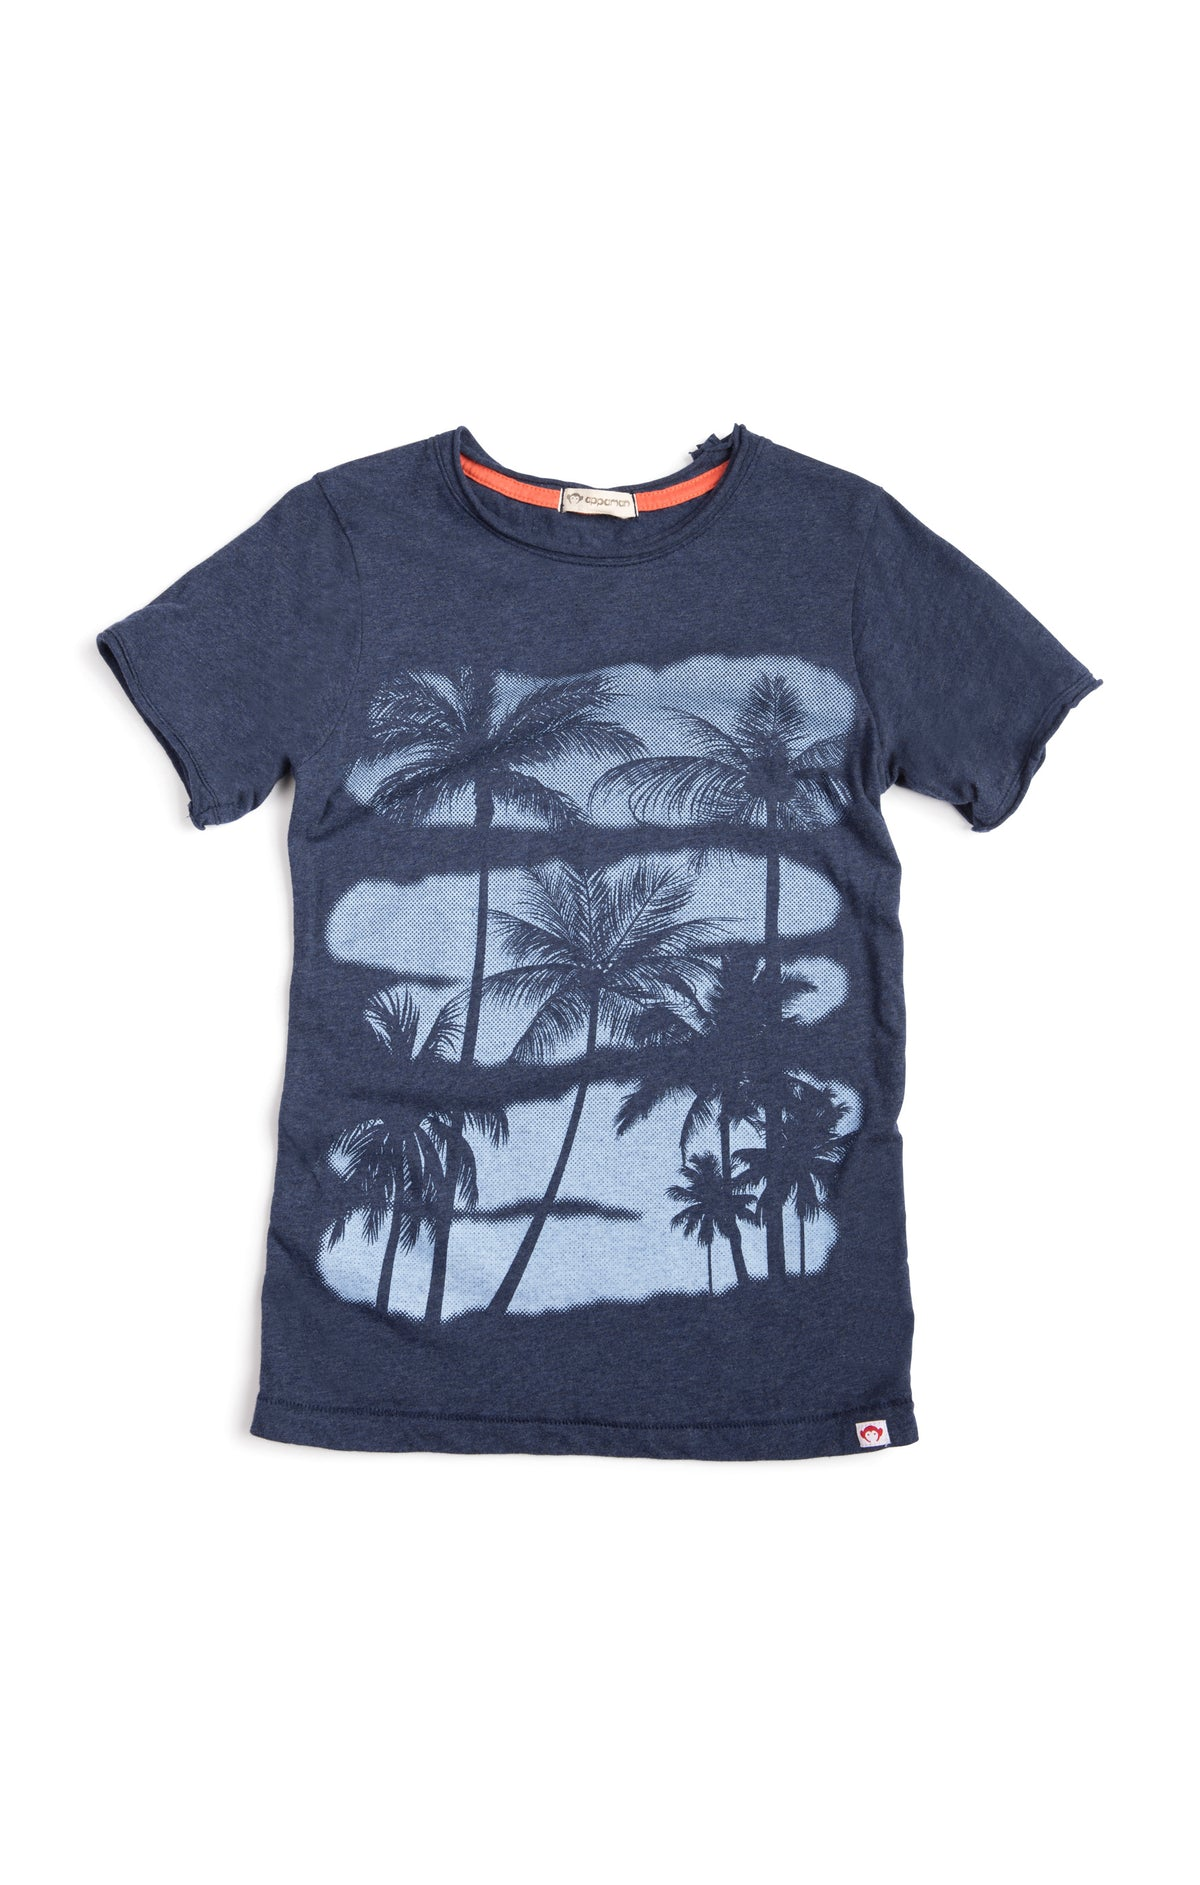 Boys Graphic Palm Tree Short Sleeve T-Shirt